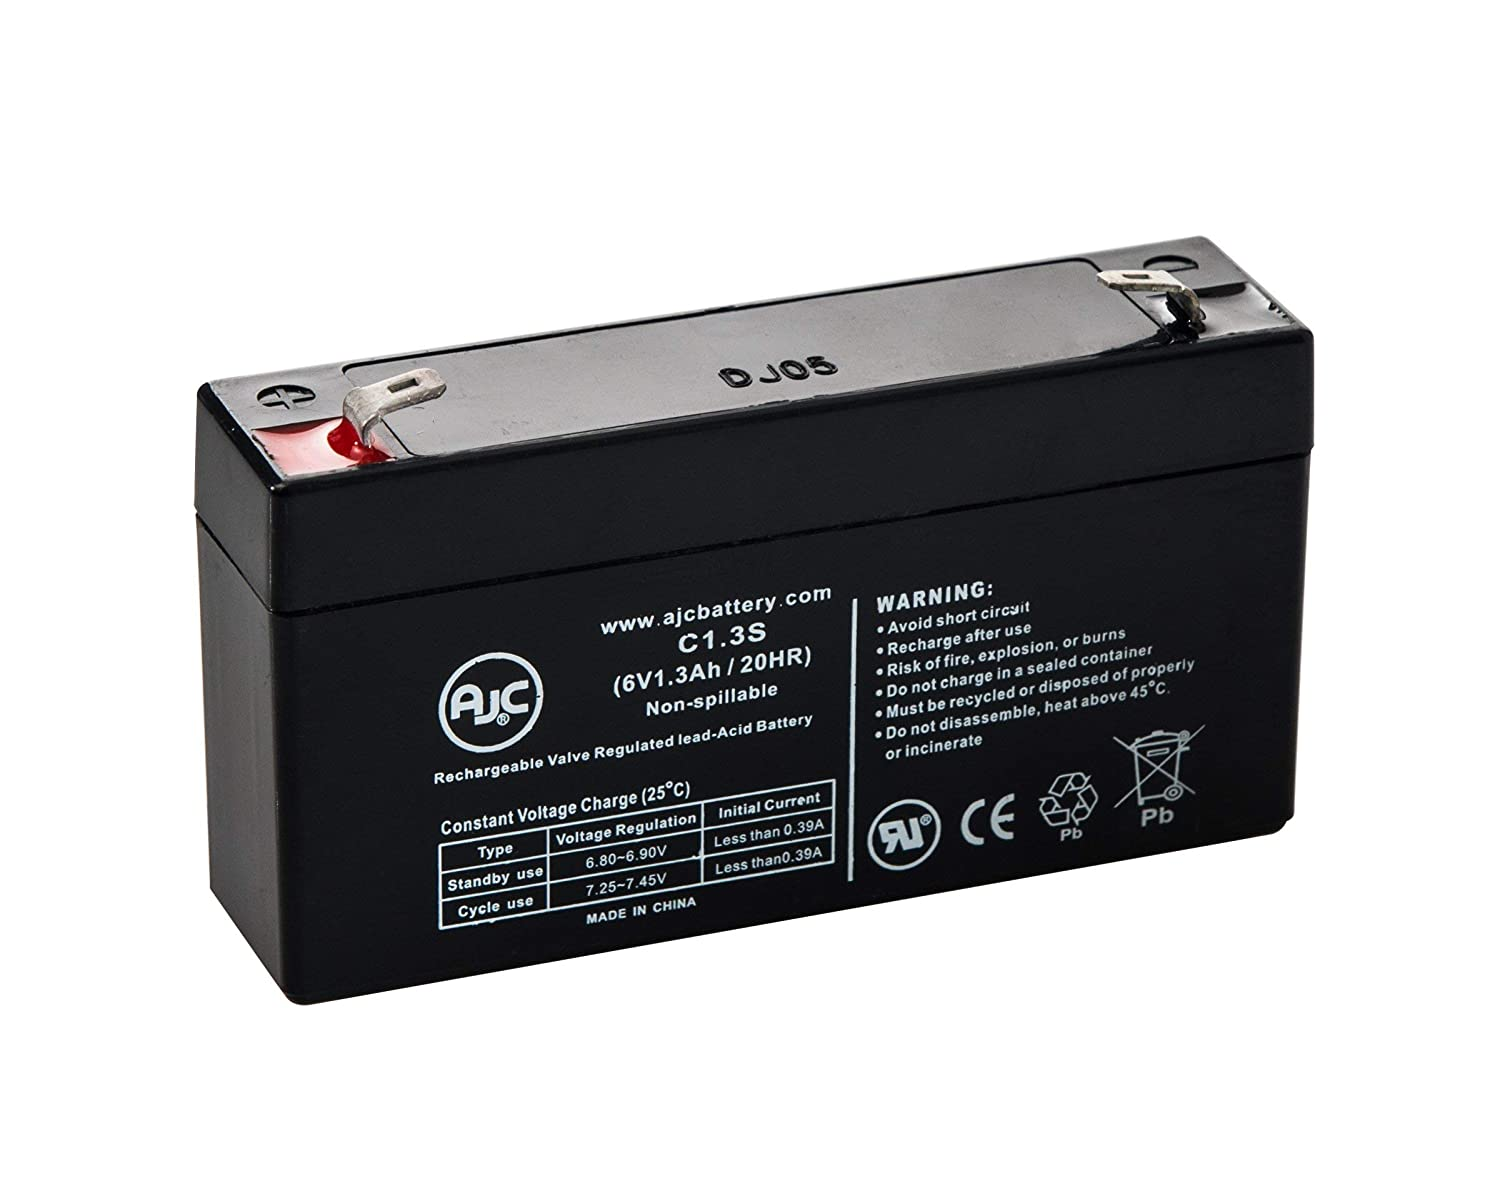 Leoch DJW6-1.2 Sealed Lead Acid - AGM - VRLA Battery - This is an AJC Brand Replacement AJC Battery